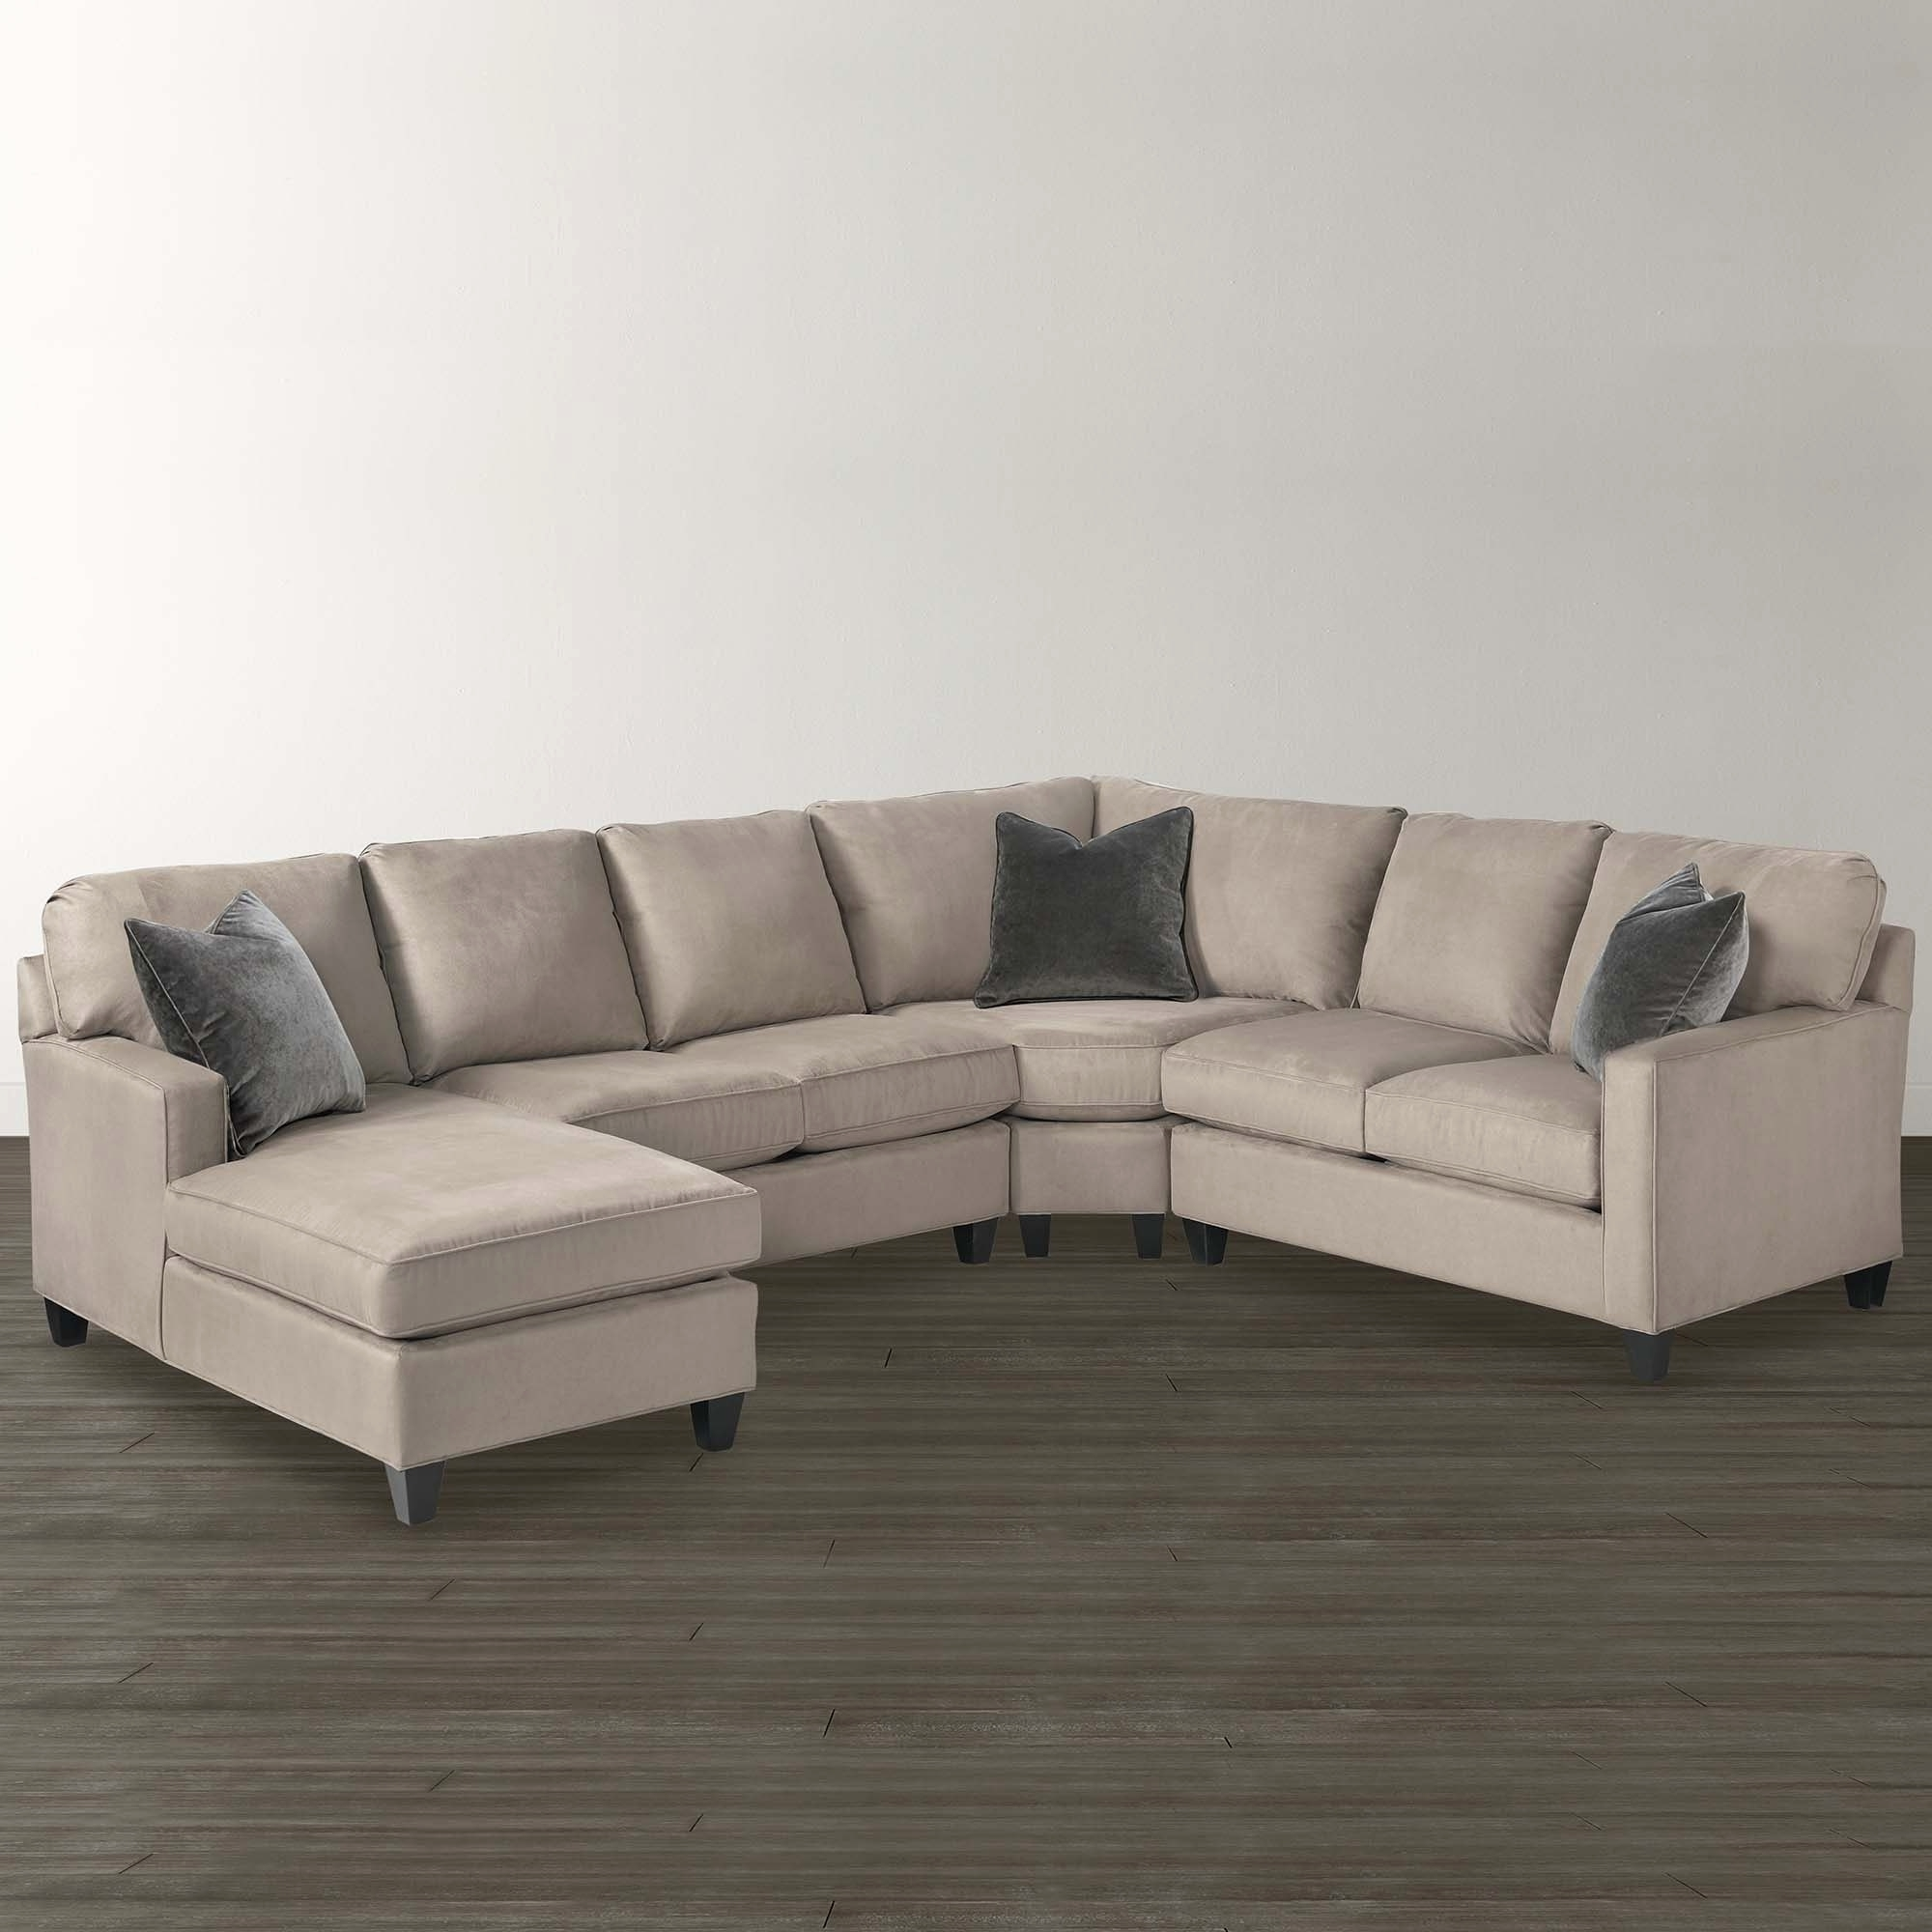 Best And Newest Unusual Sofas For Unique Tan Leather Couch 2018 – Couches And Sofas Ideas (View 13 of 20)